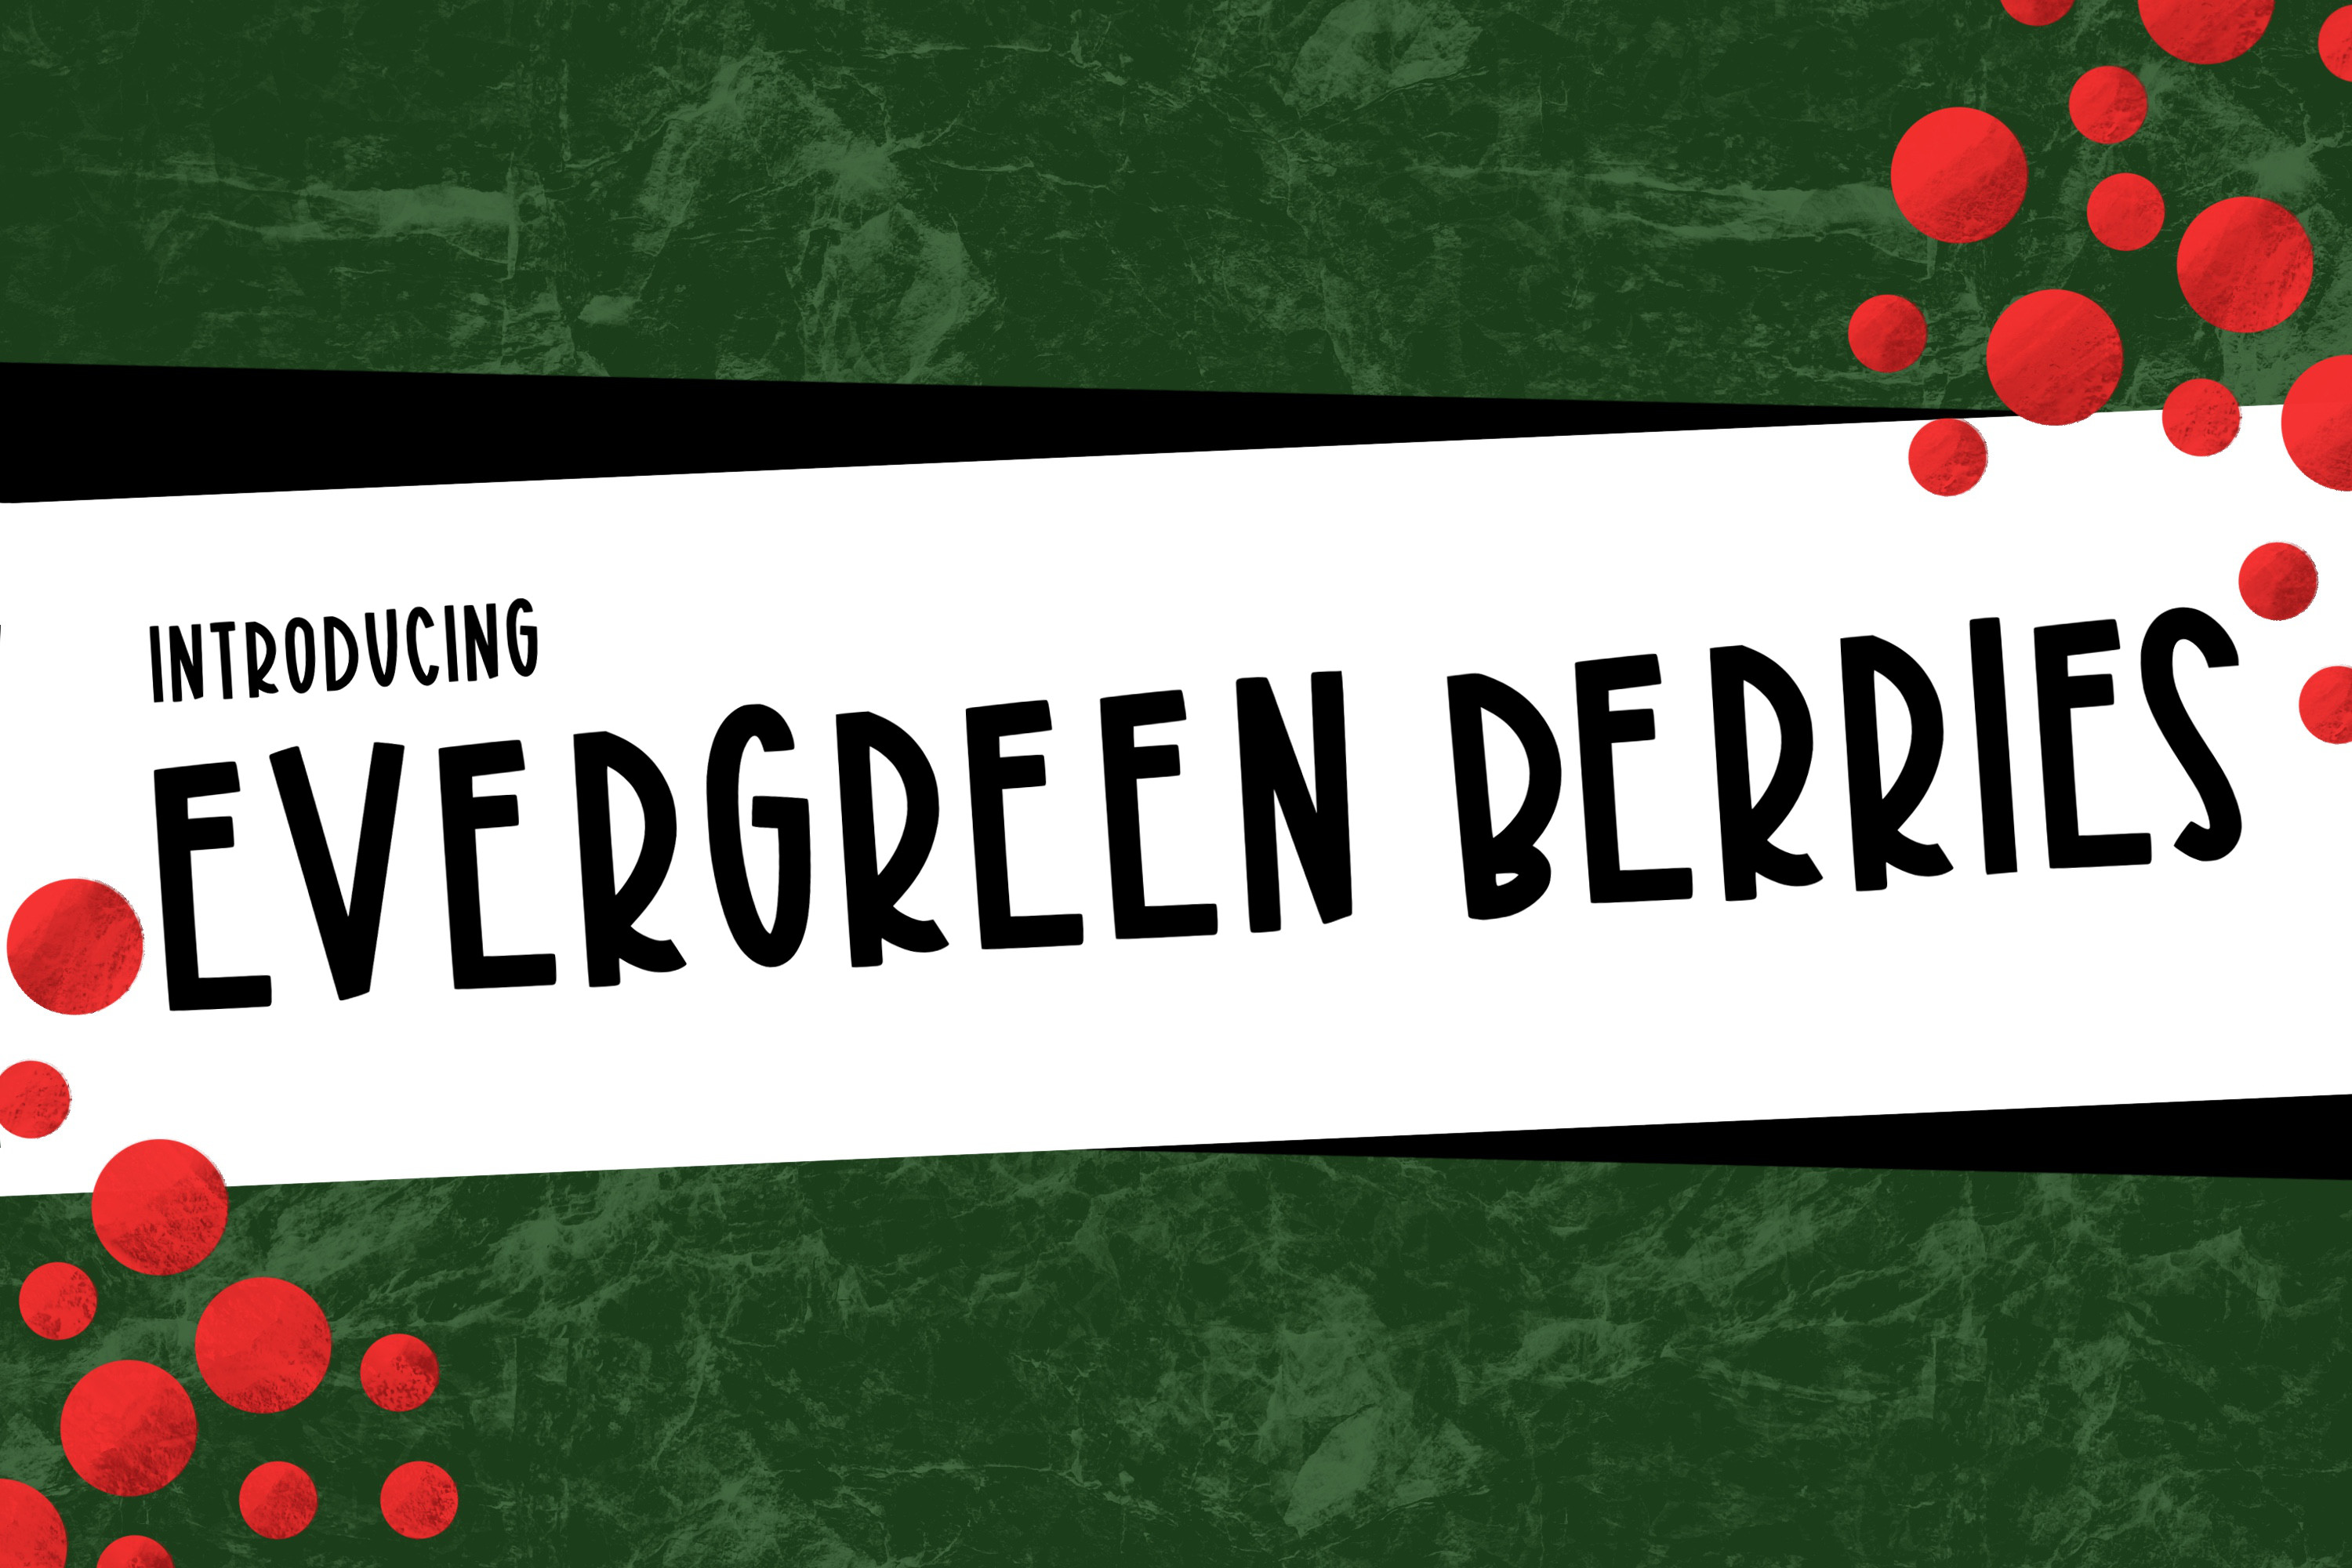 Evergreen Berries a Joyful Font example image 1